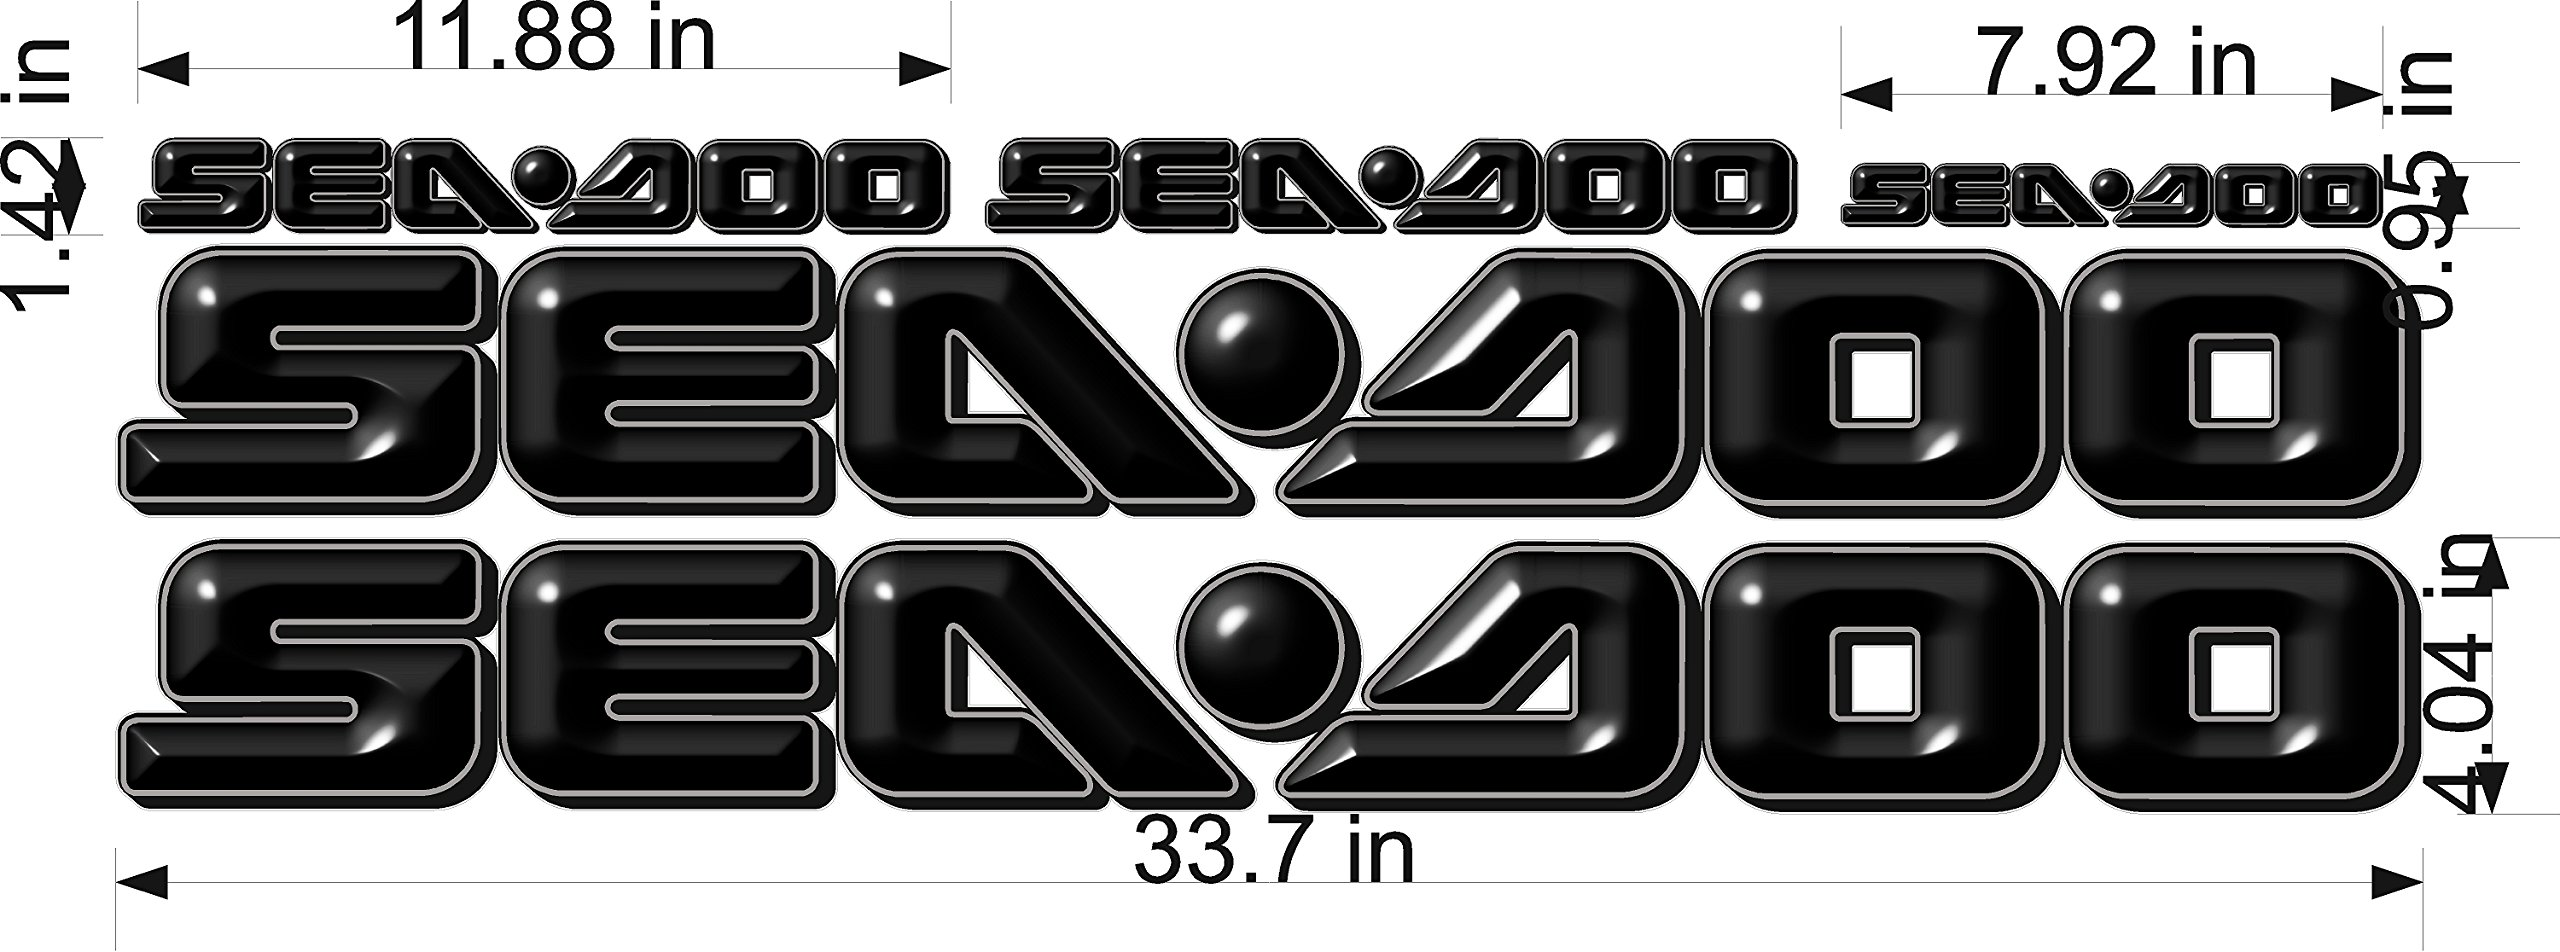 SEA-DOO-BLACK -3D-LOGO-4x34-DECAL-SET-GRAPHIC-STICKER-PACKAGE, REPLACEMENT